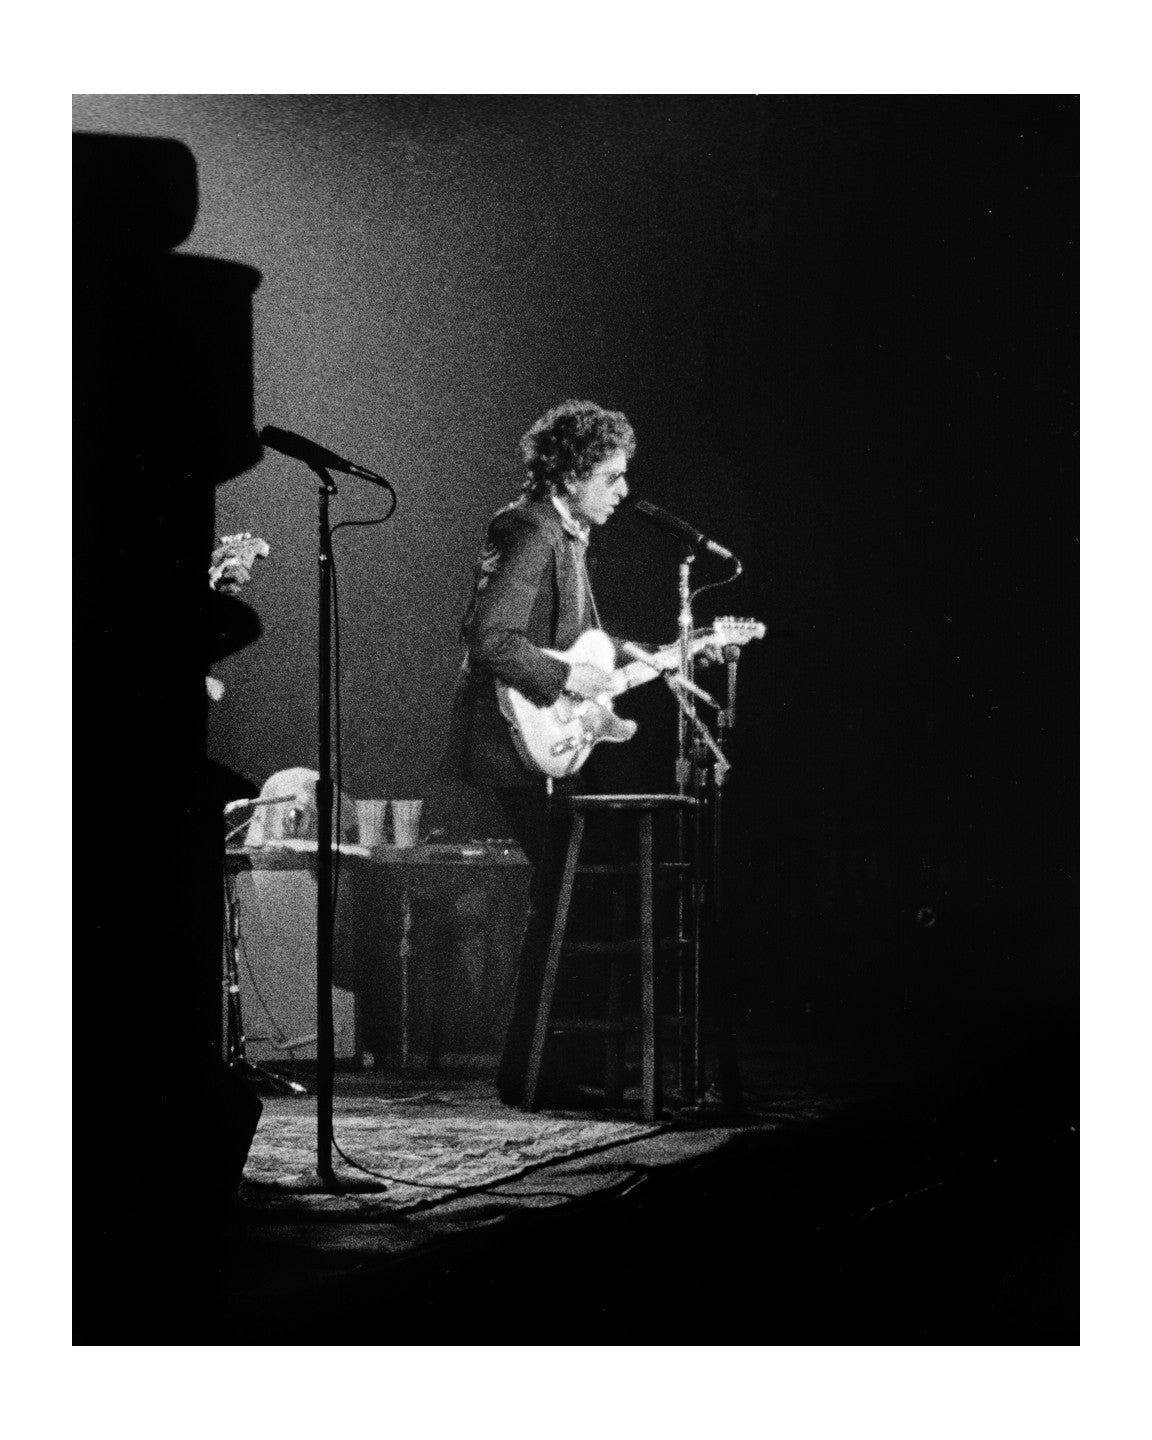 Bob Dylan photo  Bob Dylan photograph blood on the tracks buy dylan photo